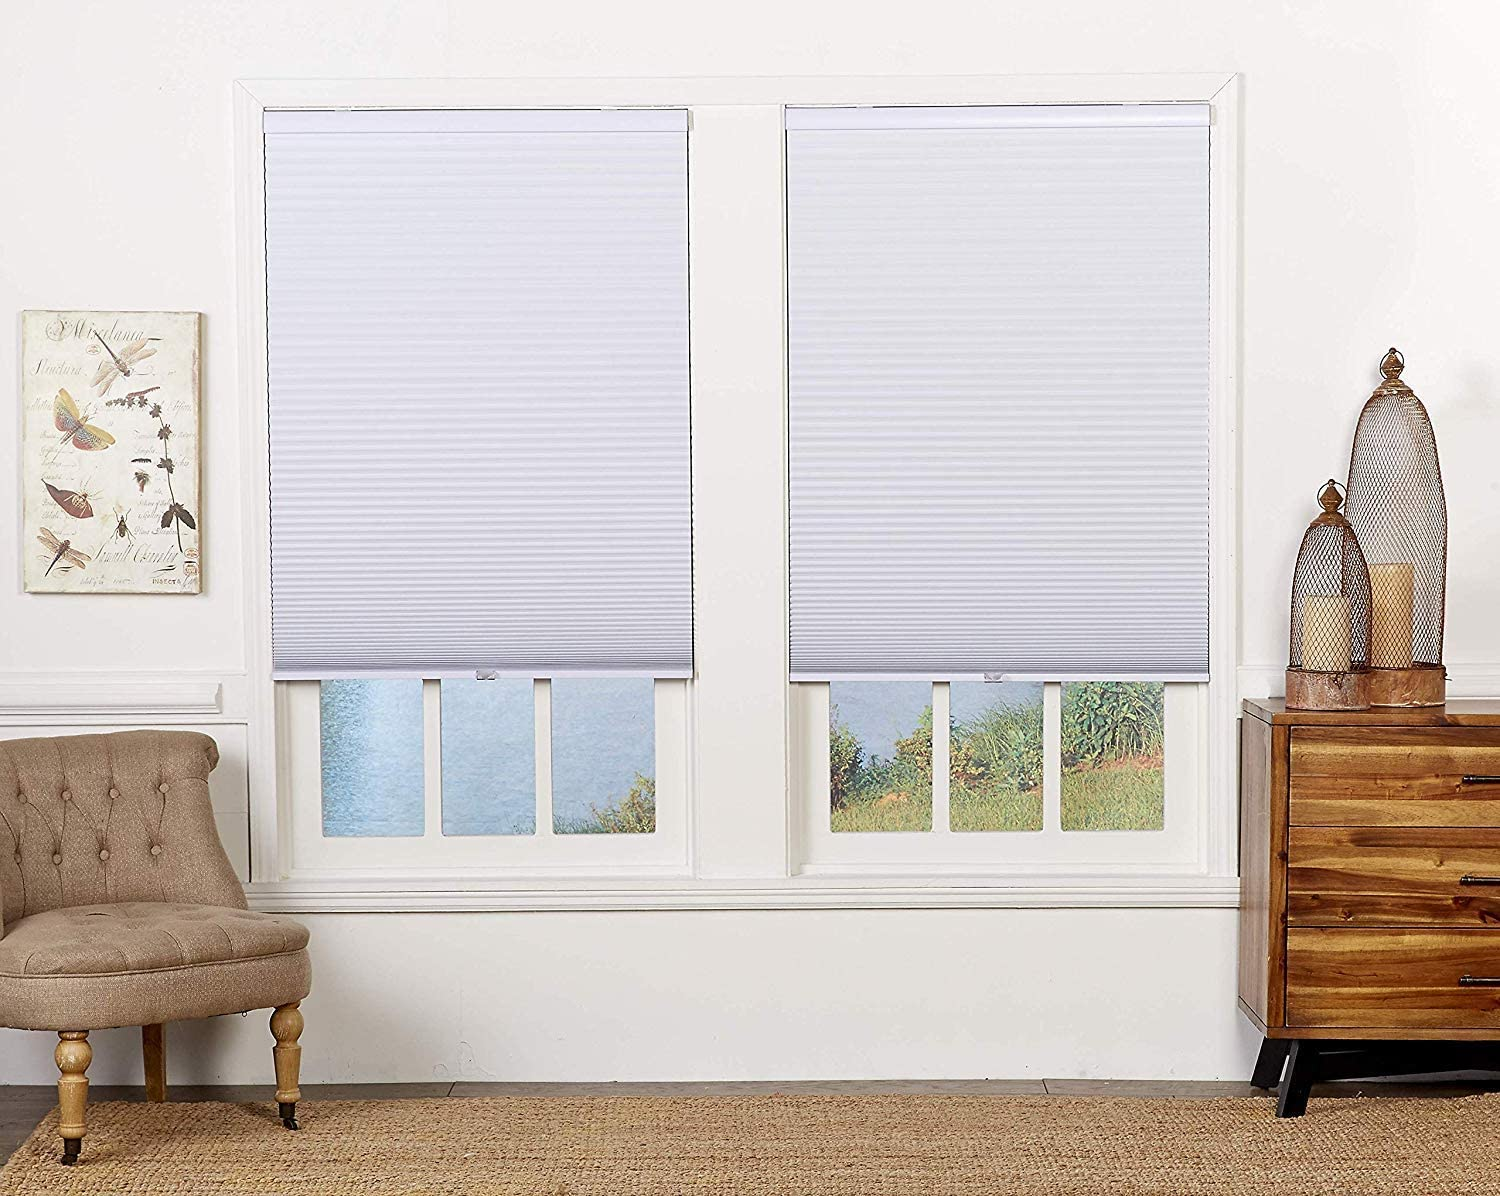 71W x 64H Inches White DEZ Furnishings QEWT710640 Cordless Blackout Cellular Shade